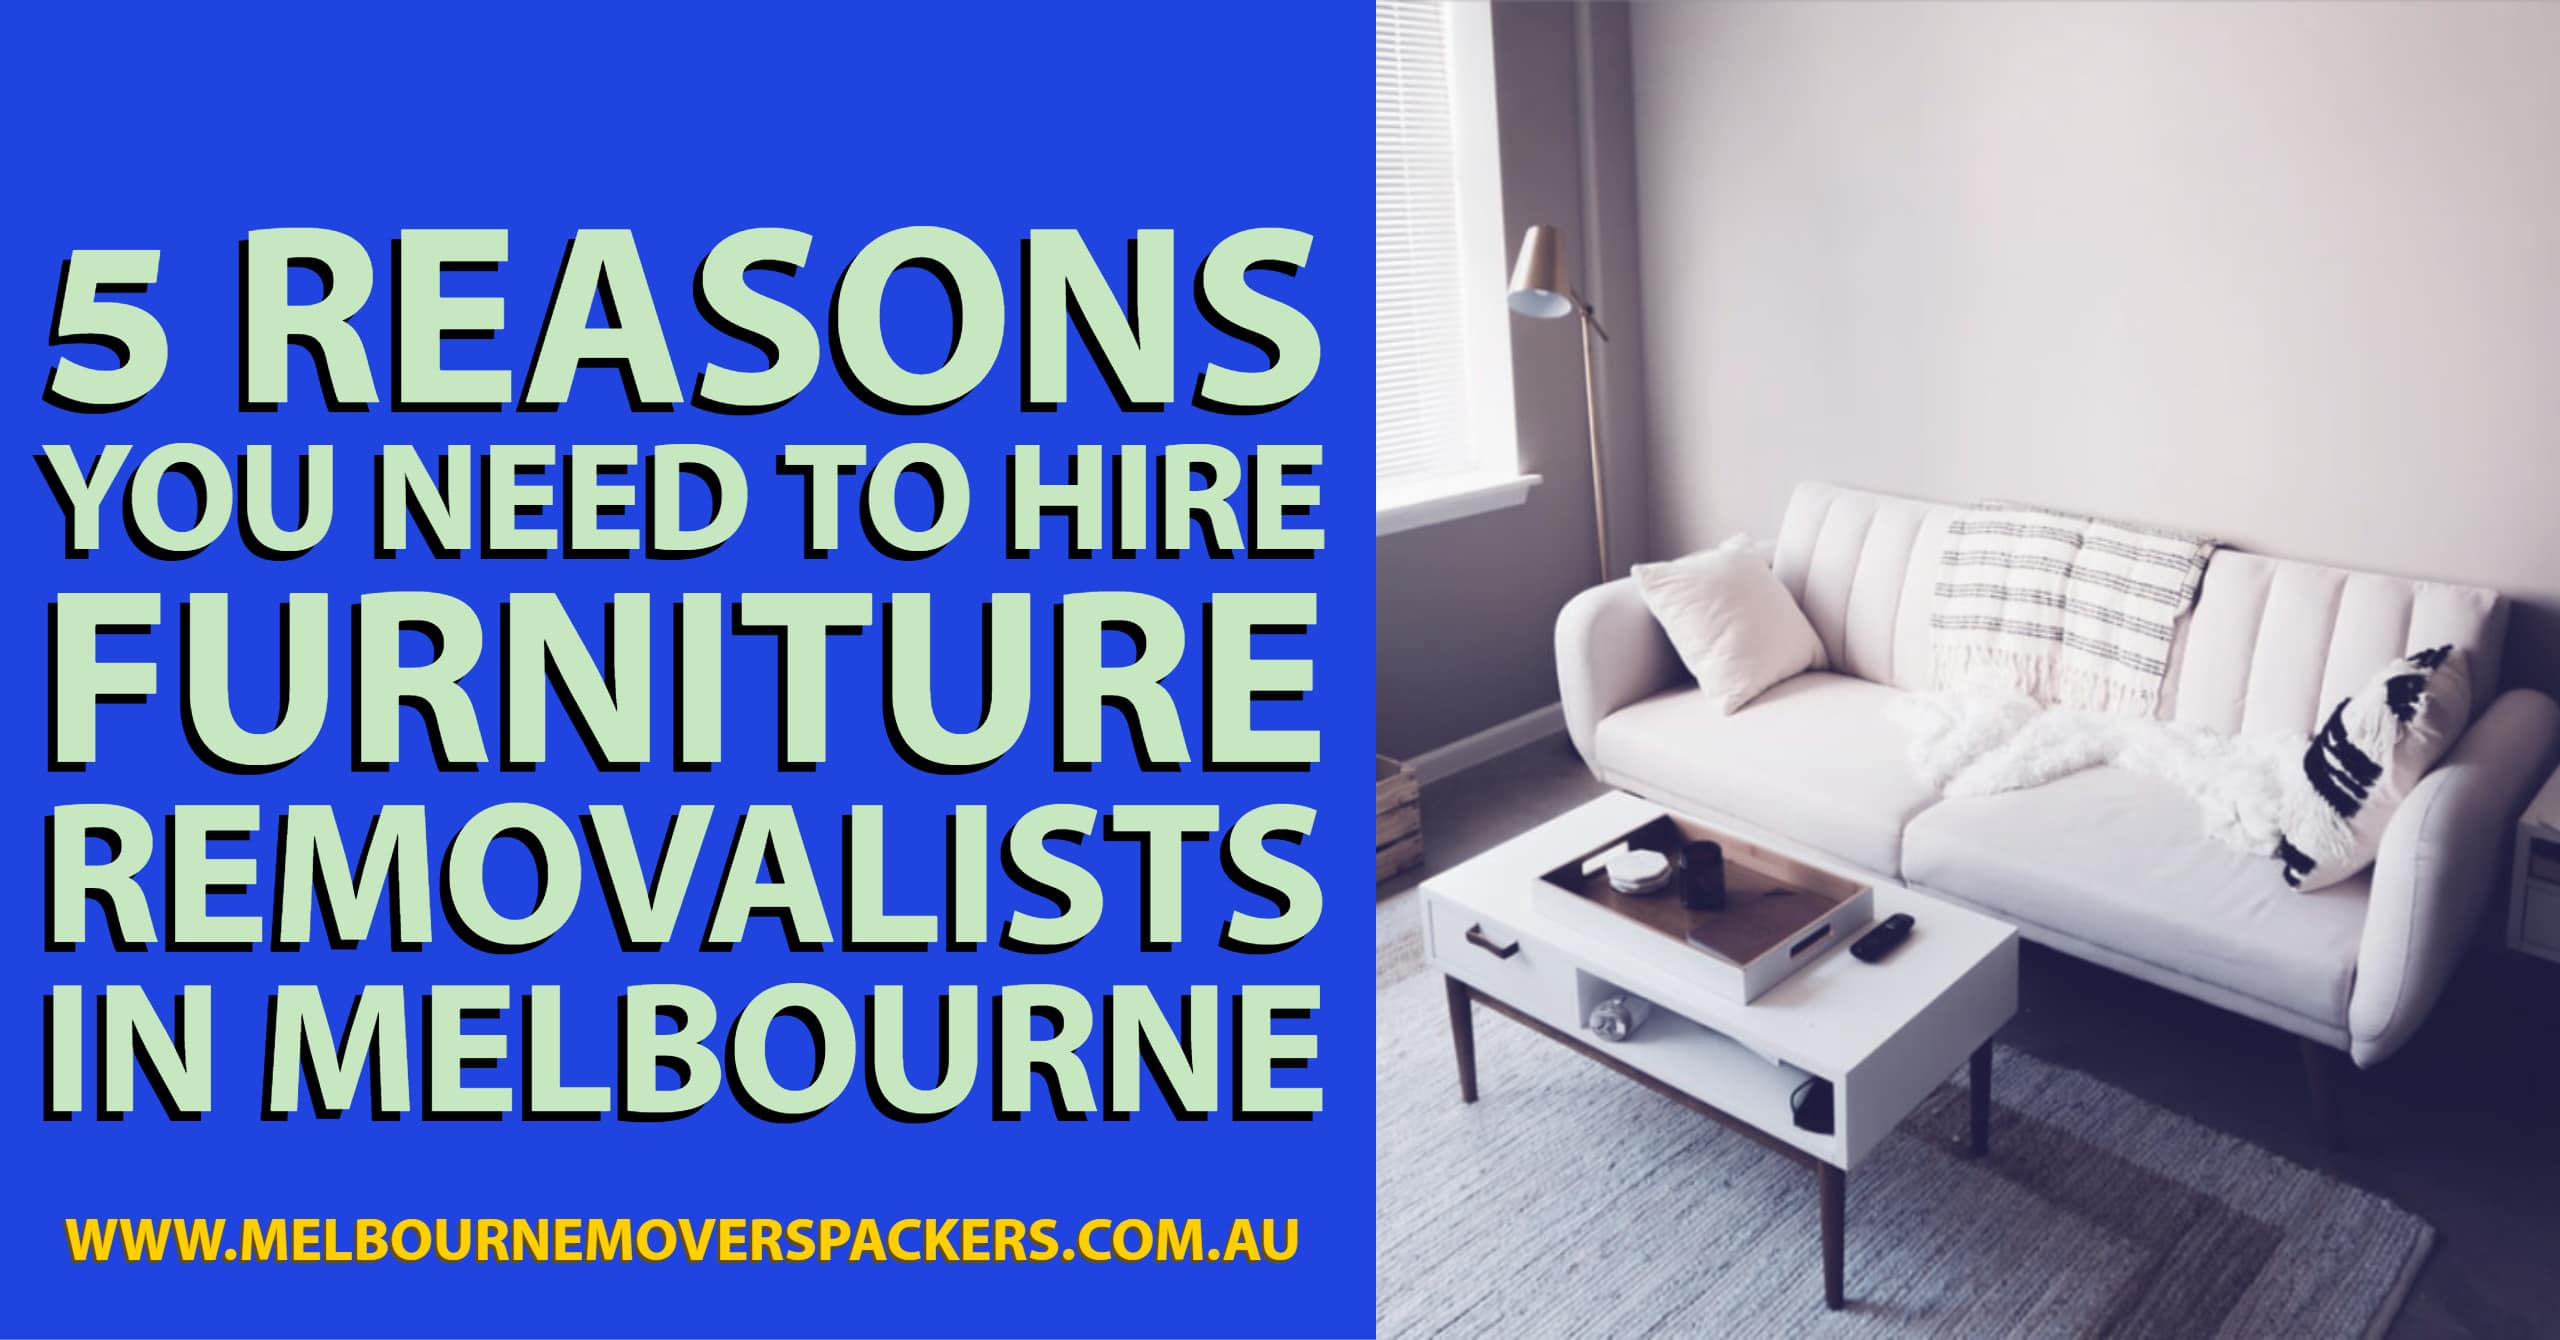 5 Reasons You Need to Hire Furniture Removalists in Melbourne